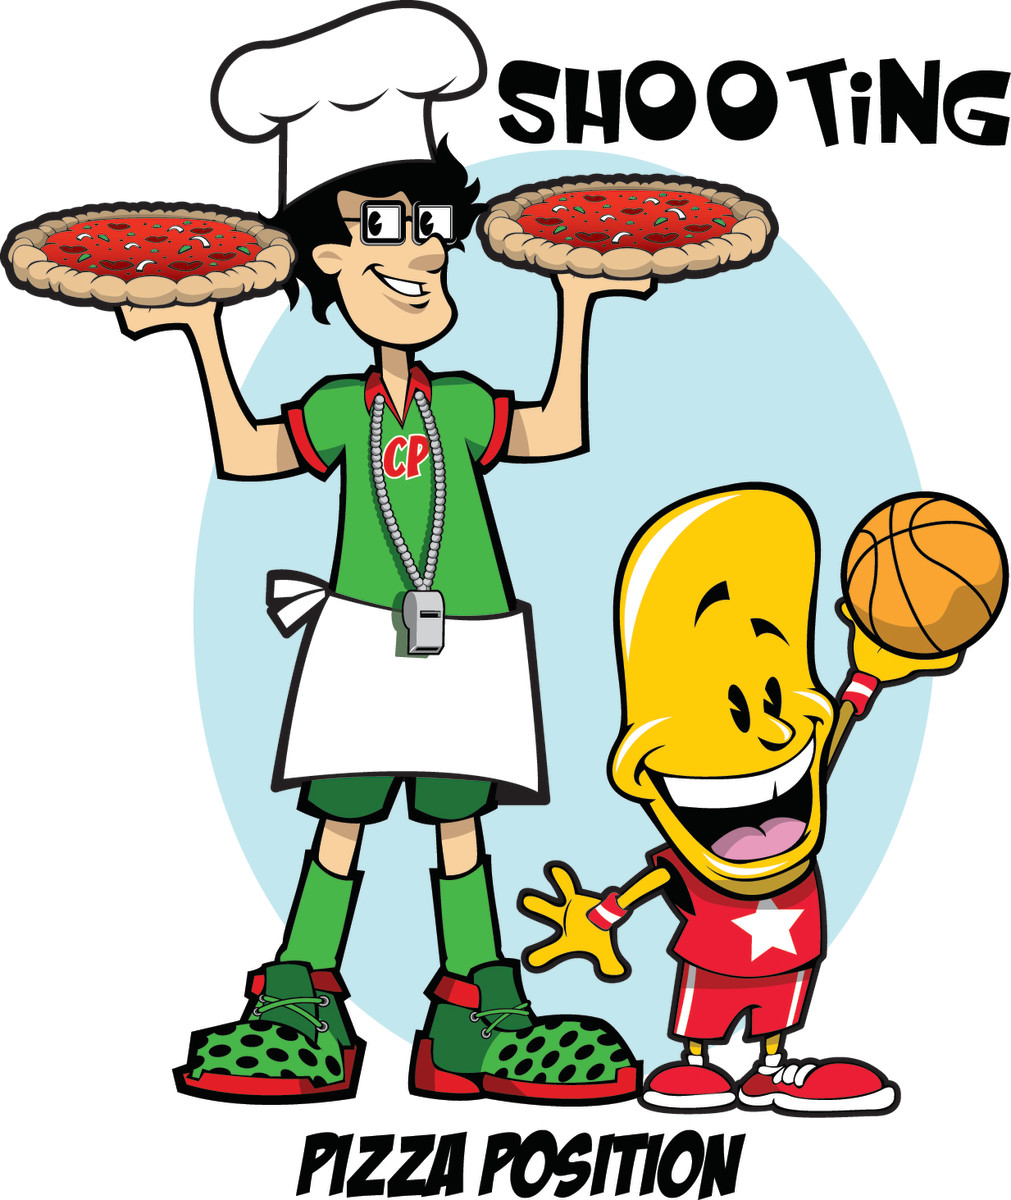 Shooting instruction, the Pizza Position